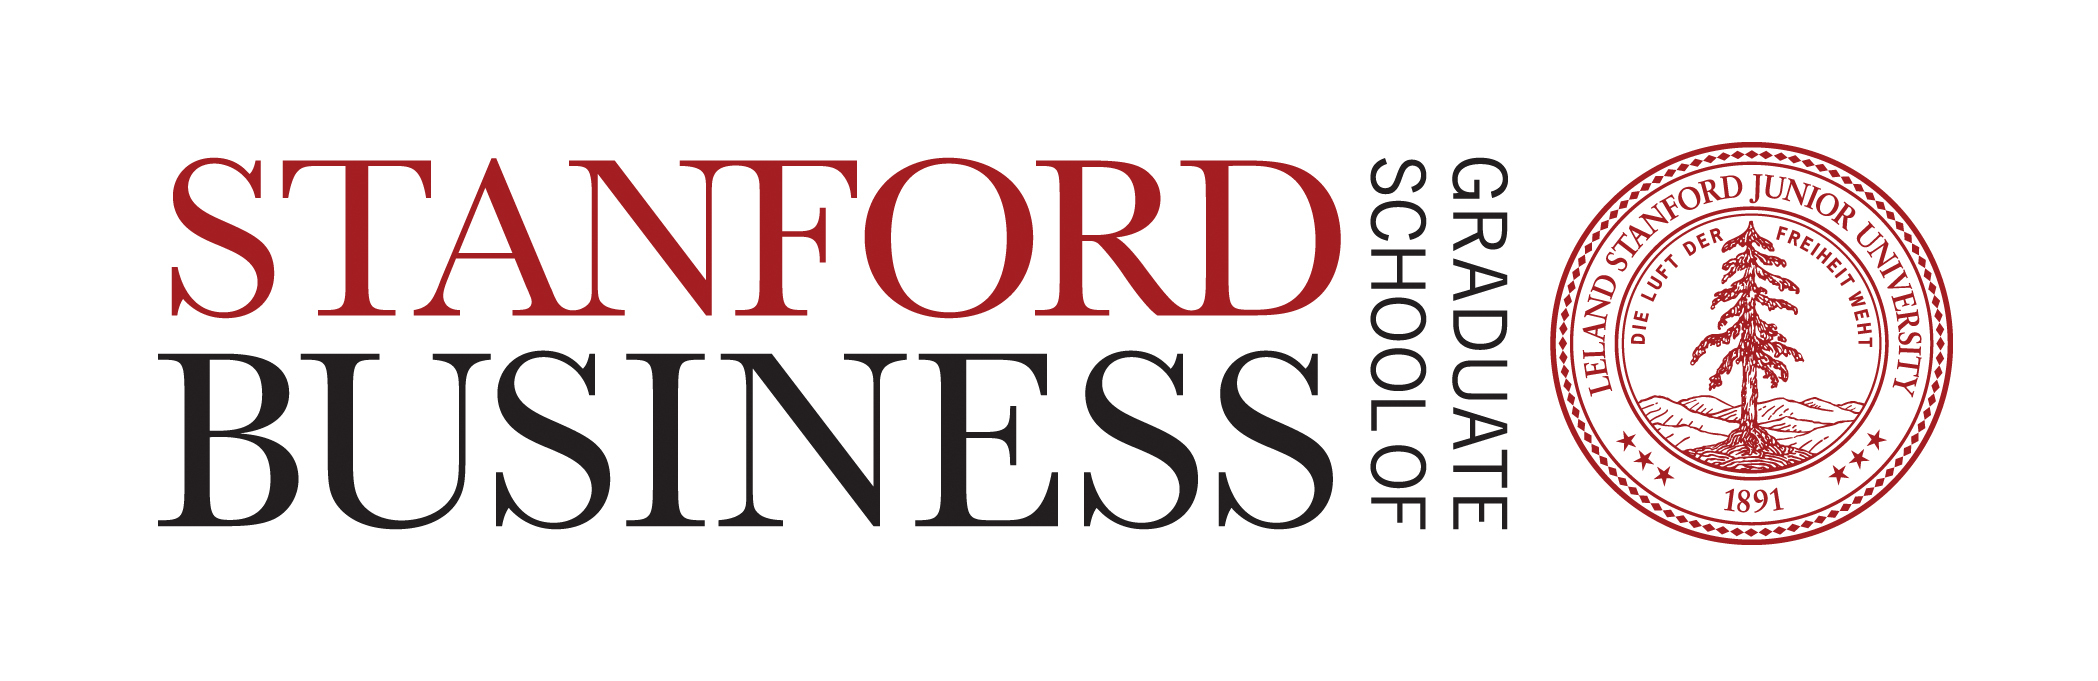 Stanford to Offer Joint Computer Science MS/MBA Degree